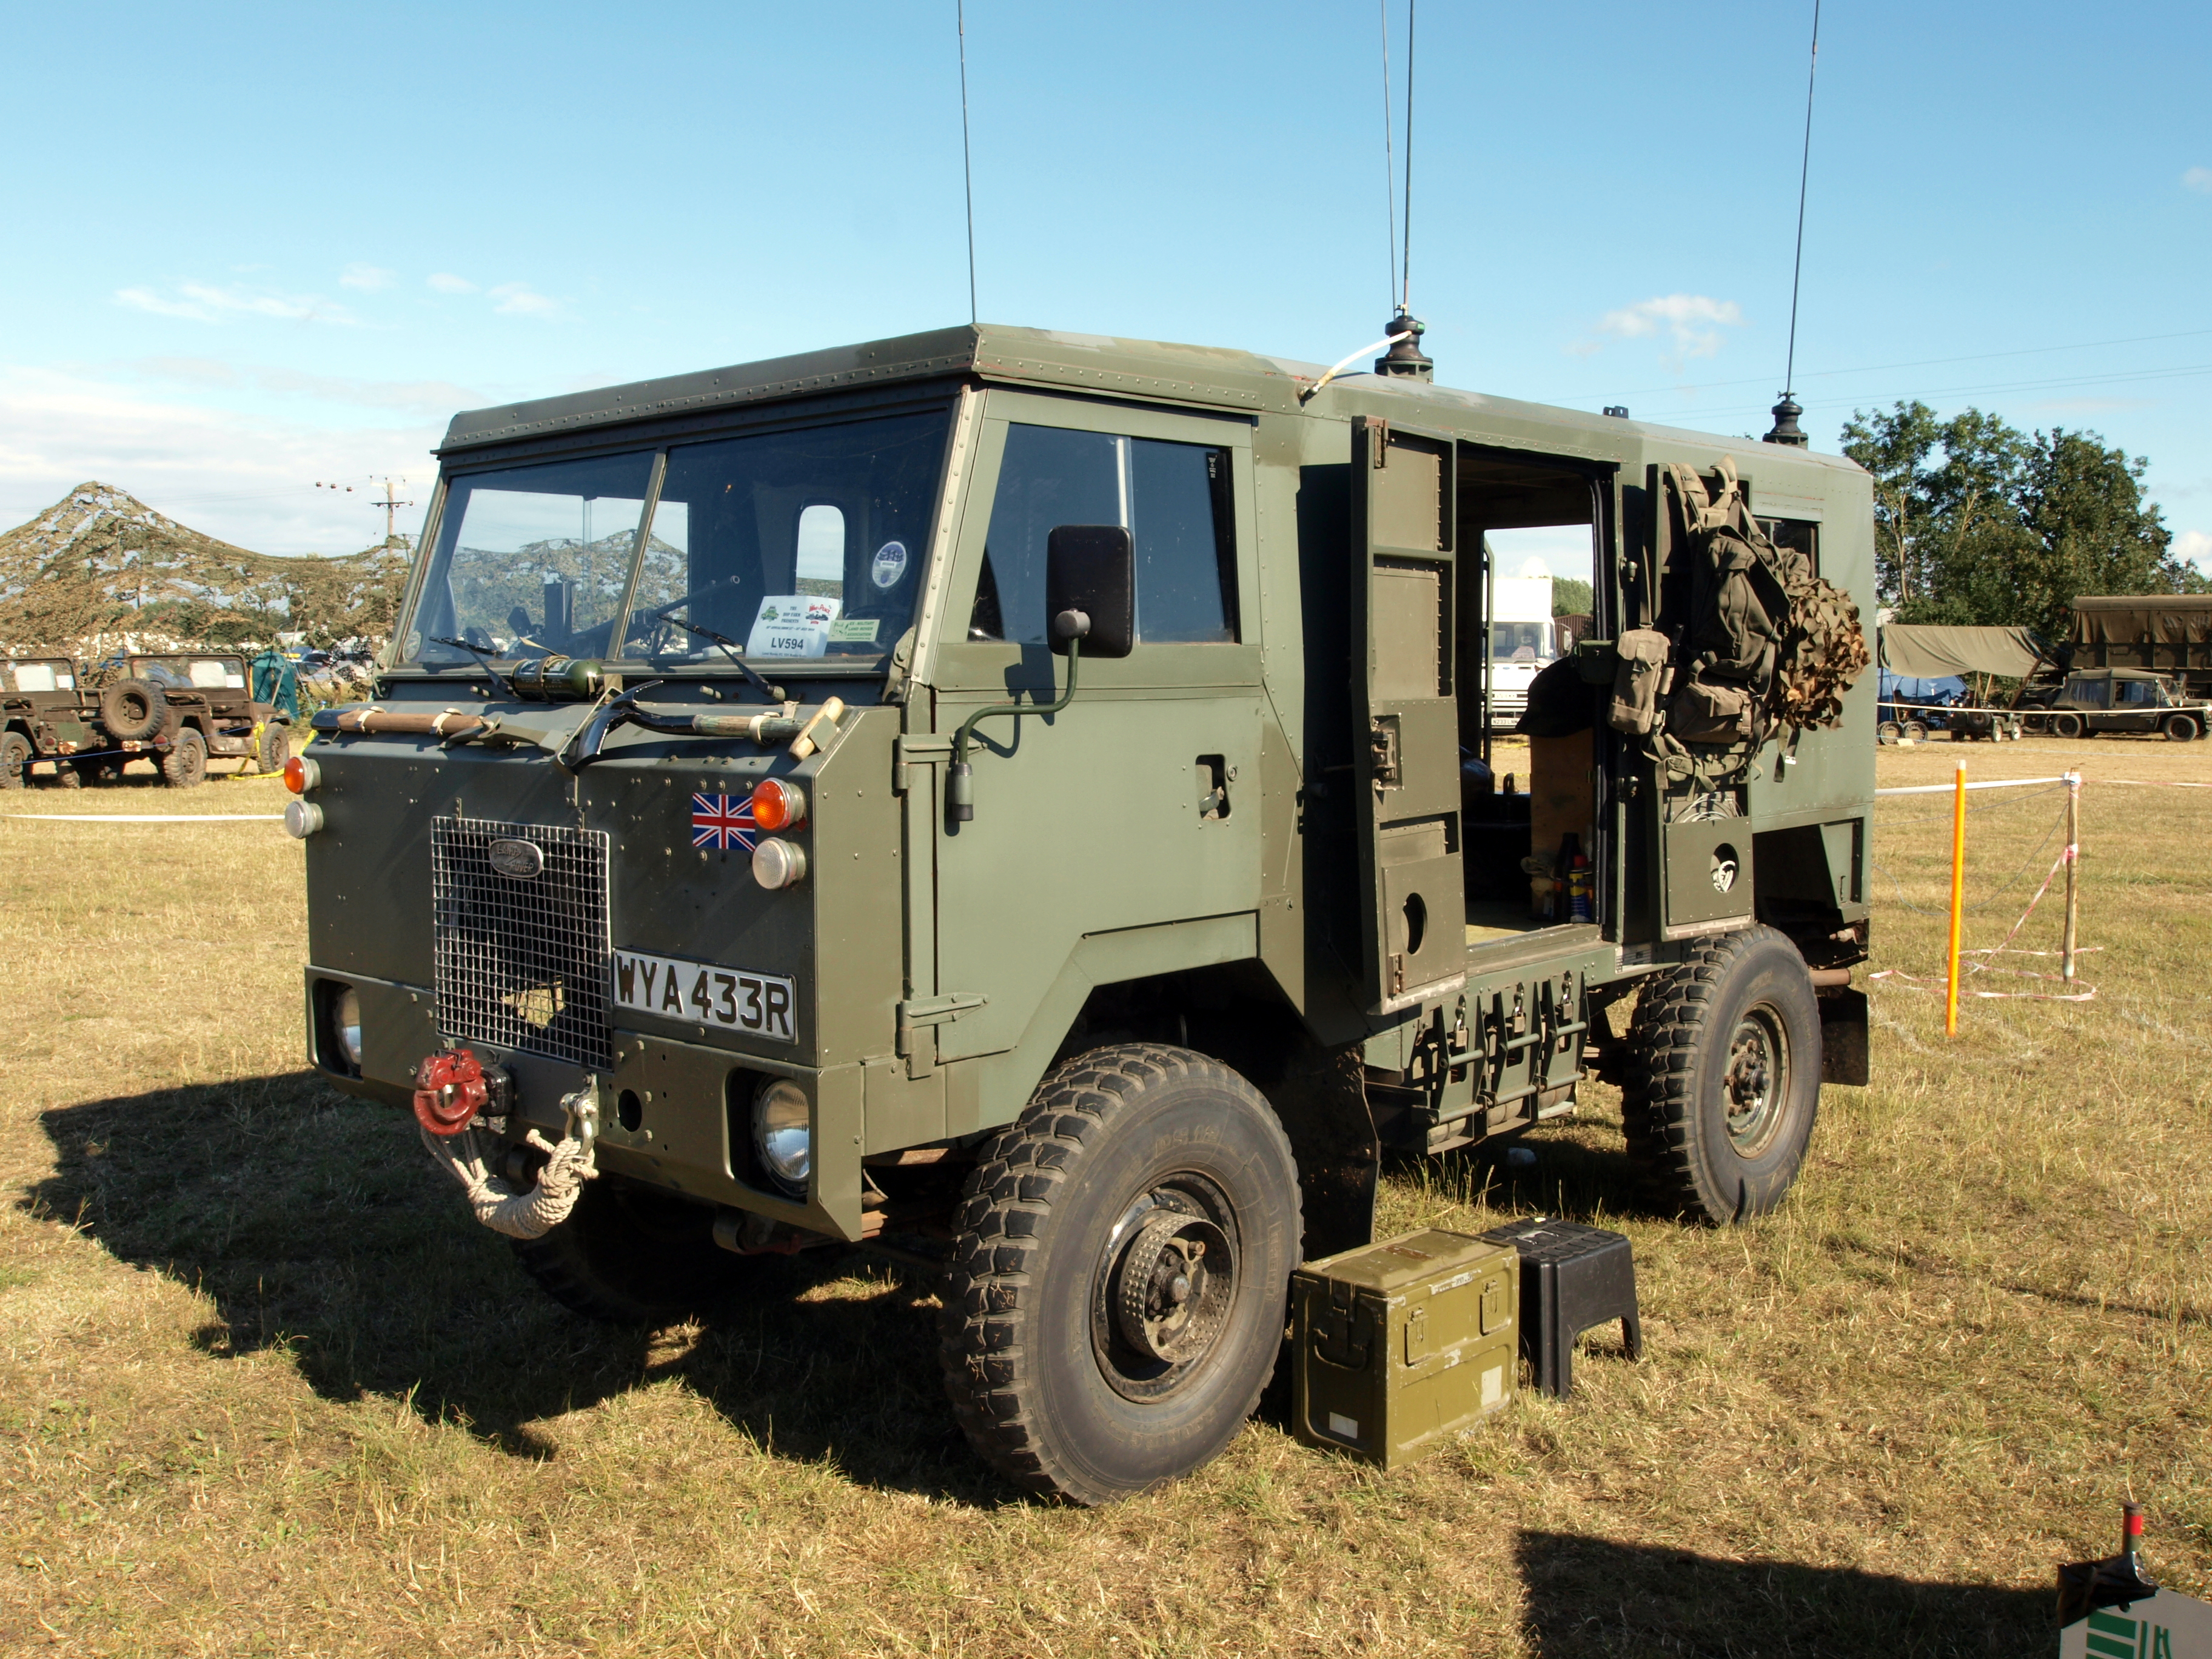 file:land rover 101 forward control pic5 - wikimedia commons